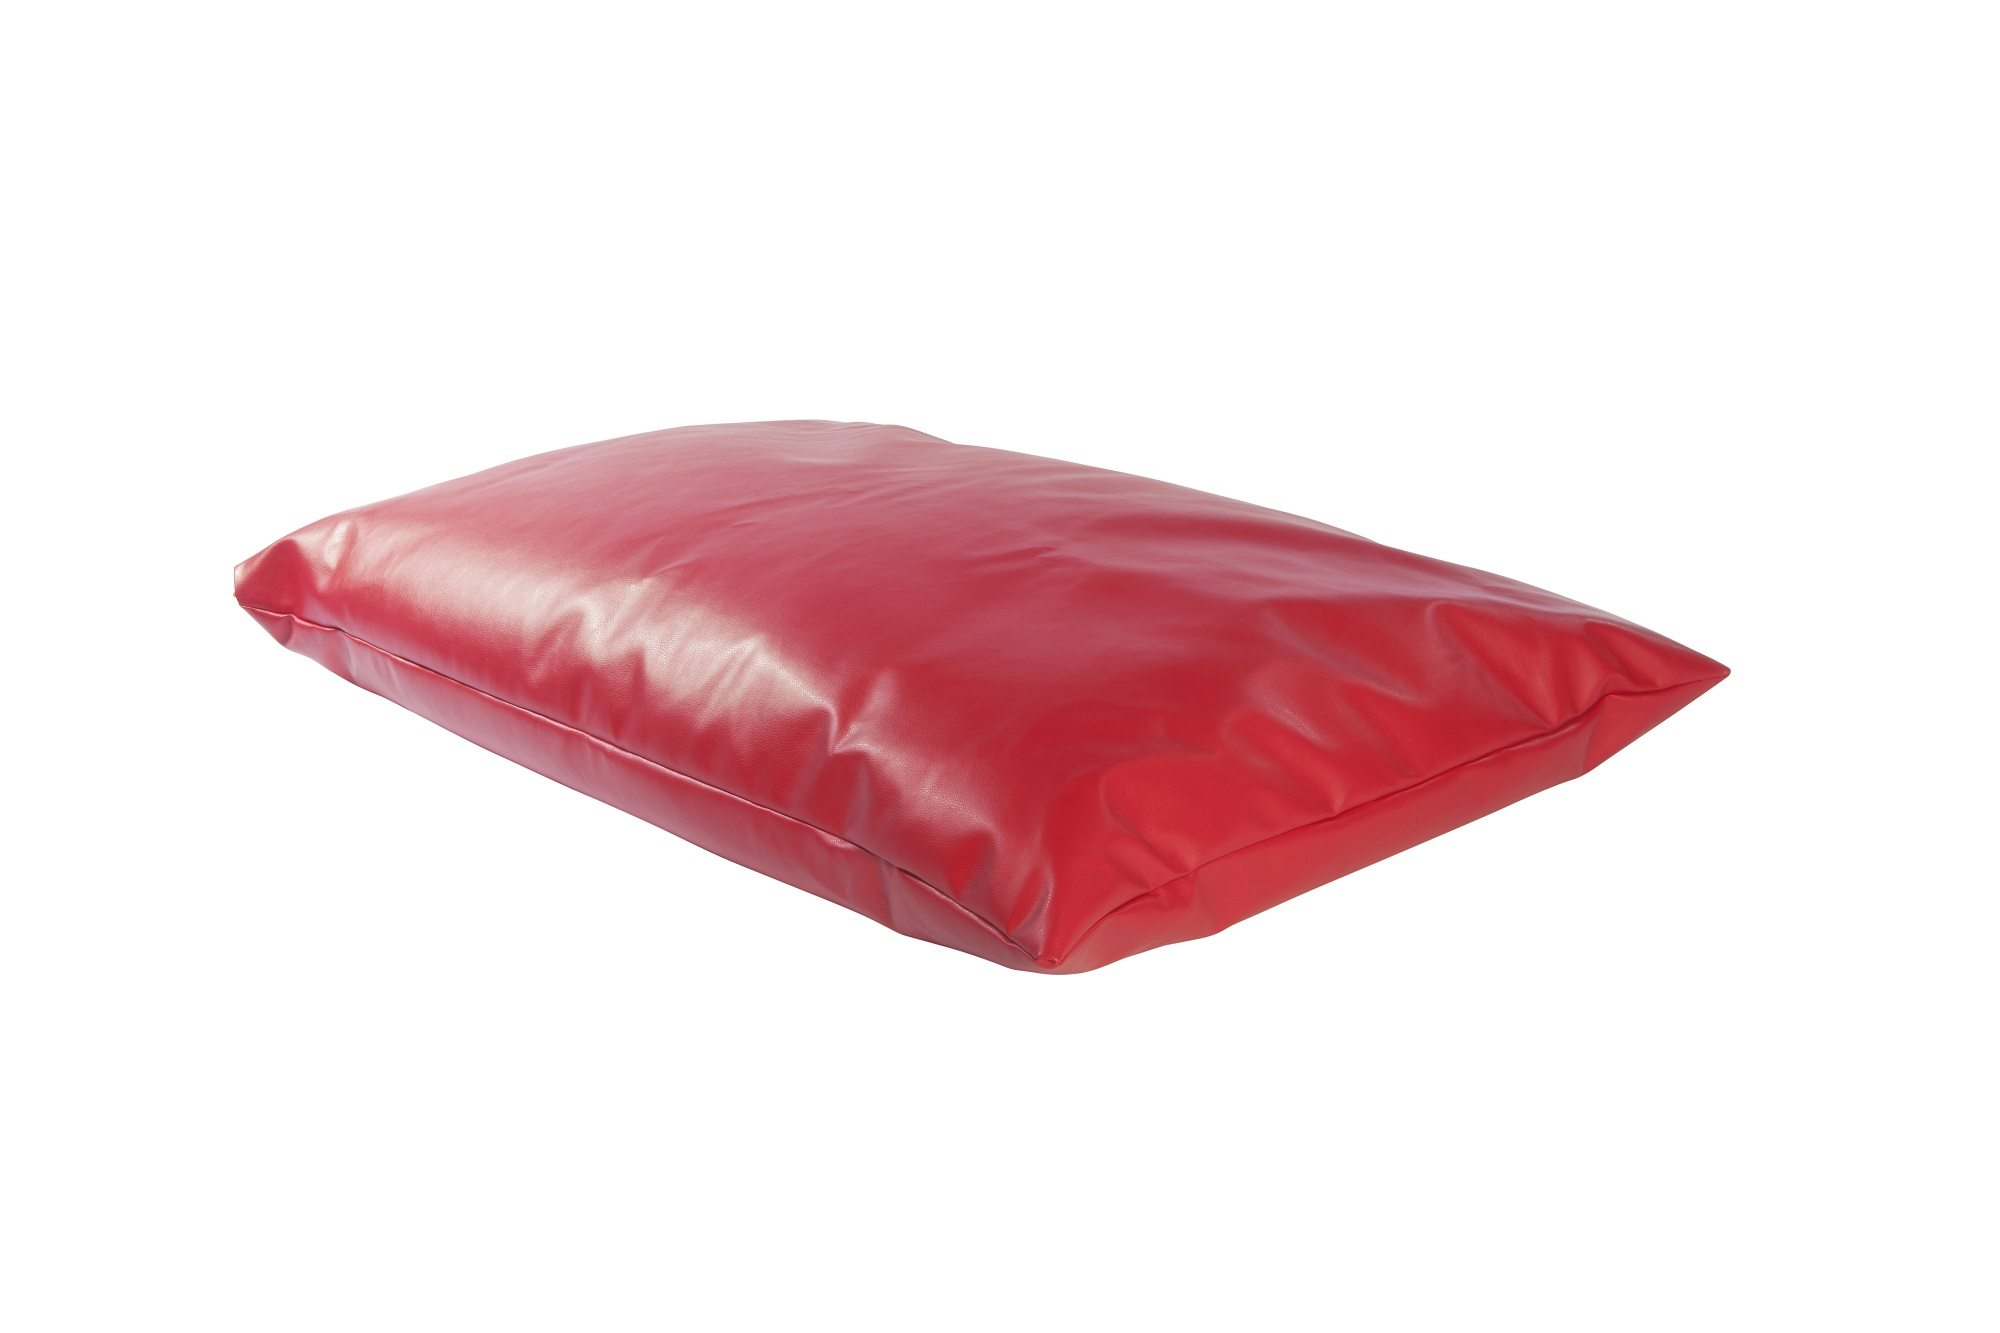 Giant Child Floor Cushion Faux Leather Foams 4 Sports